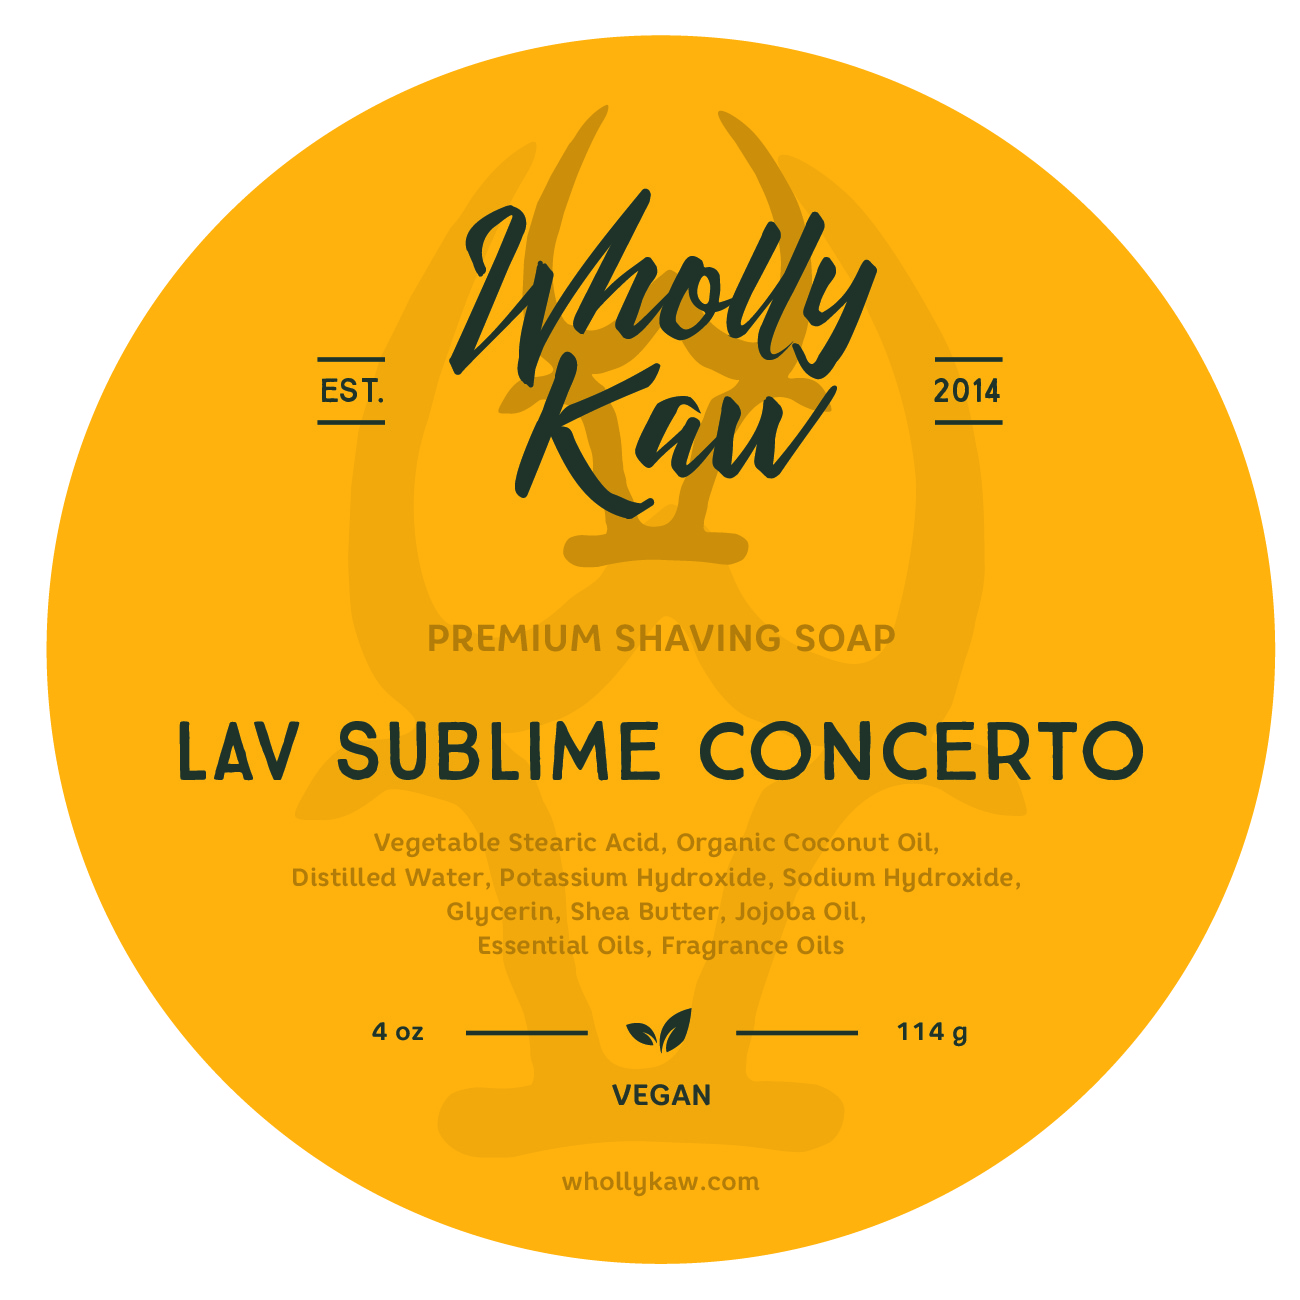 Wholly Kaw - Lav Sublime Concerto - Soap (Vegan) image